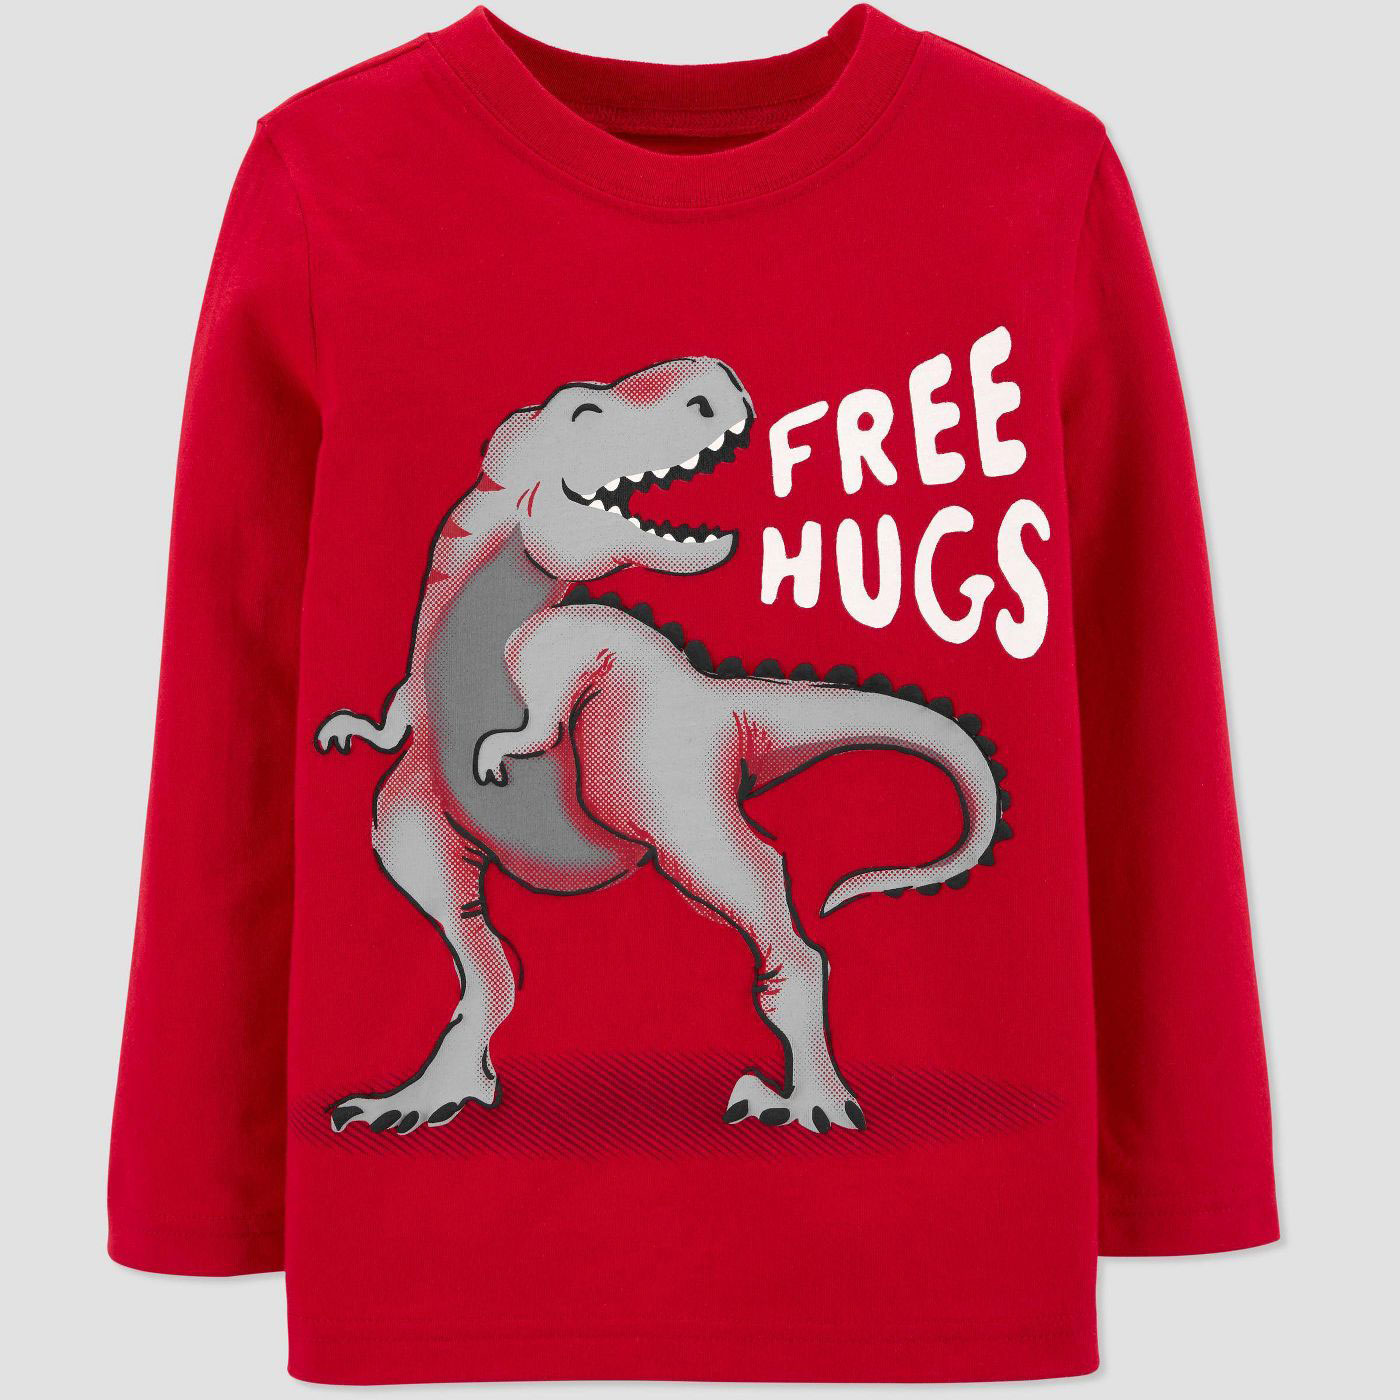 Valentine's Day gifts for kids – Just One You made by carter's Red Free Hugs T-Shirt